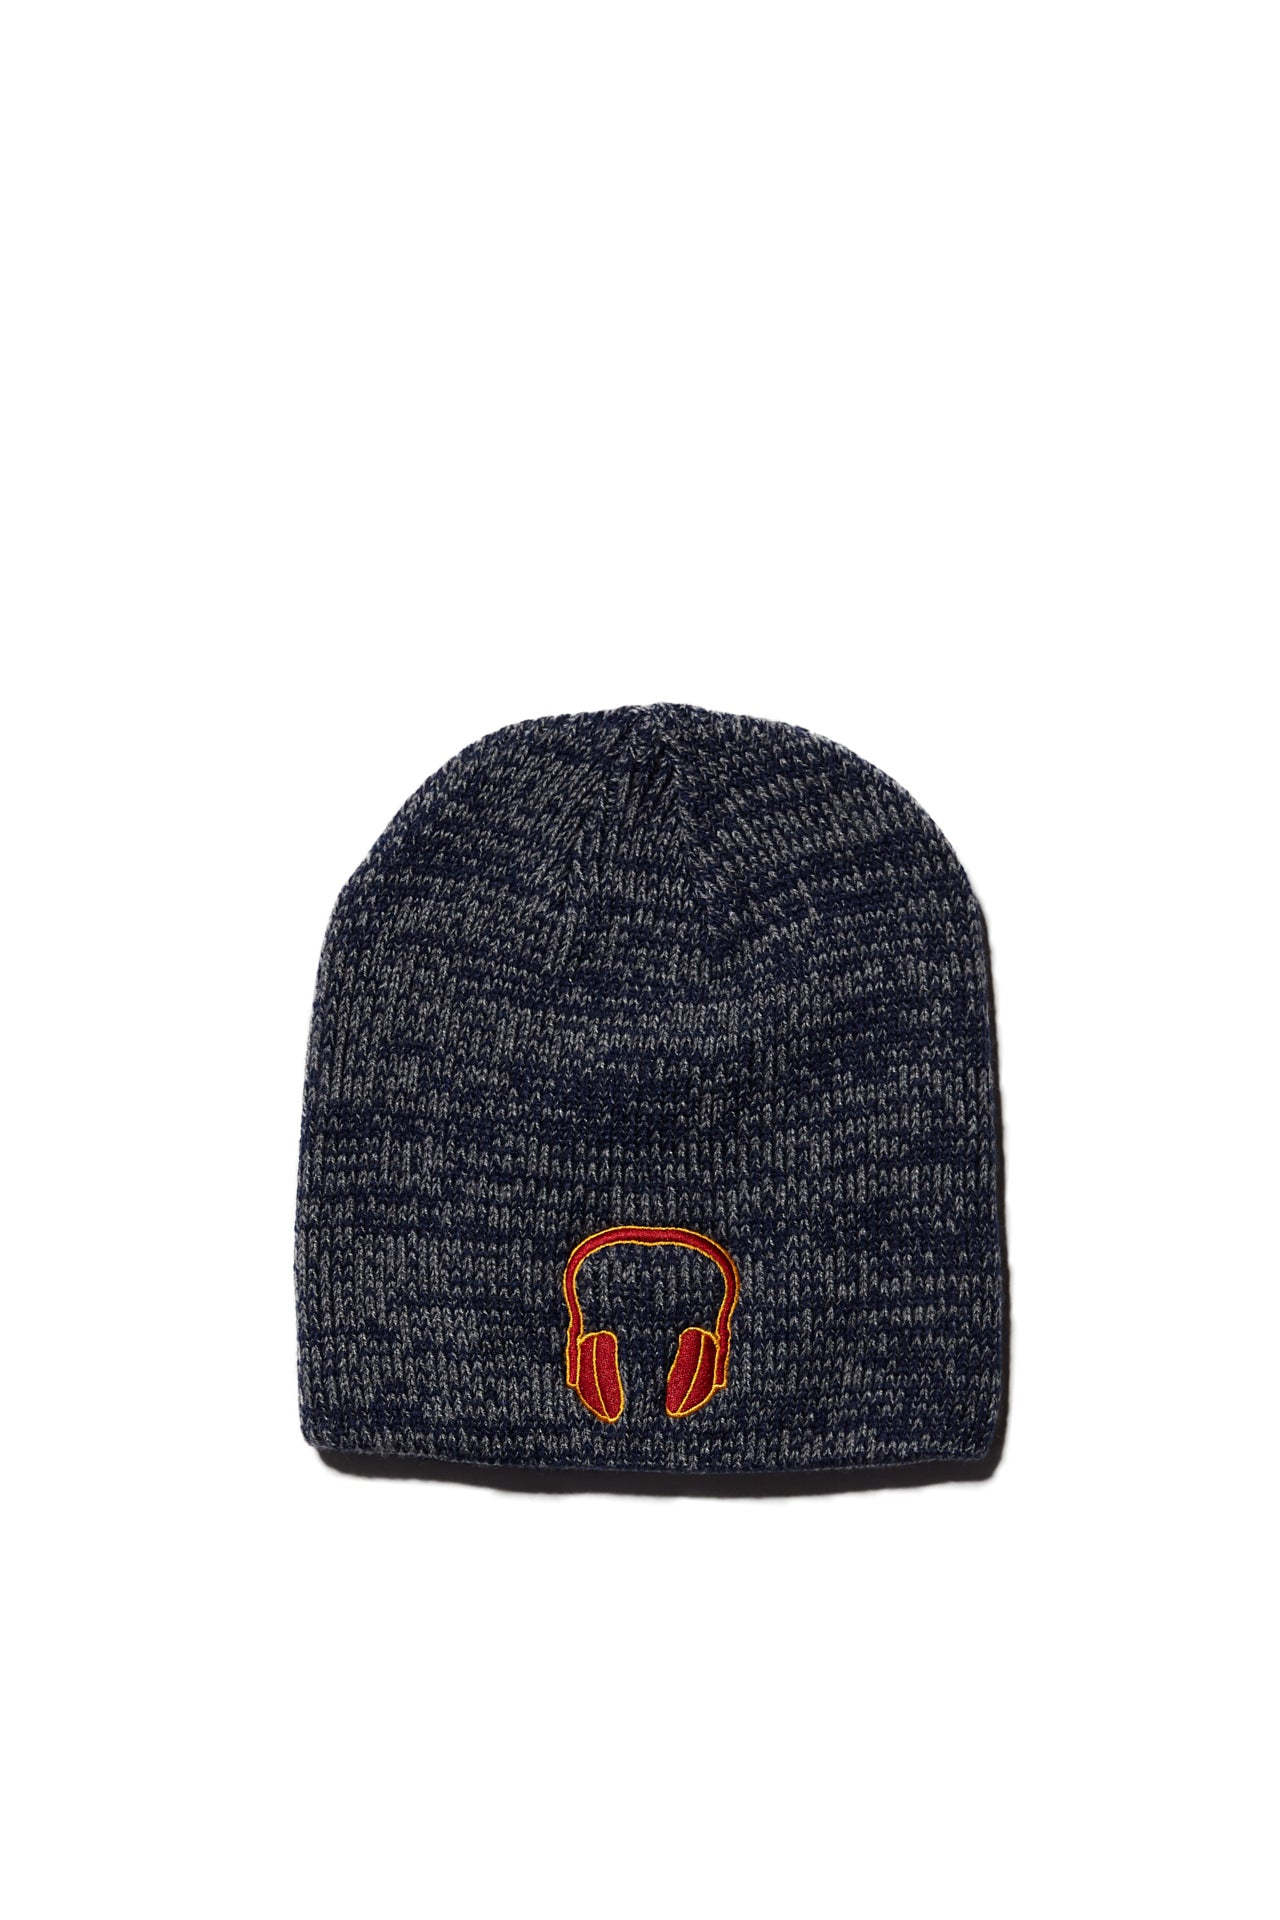 GOLD & MAROON EMBROIDERED SOUNDOFF HEADPHONE BEANIE